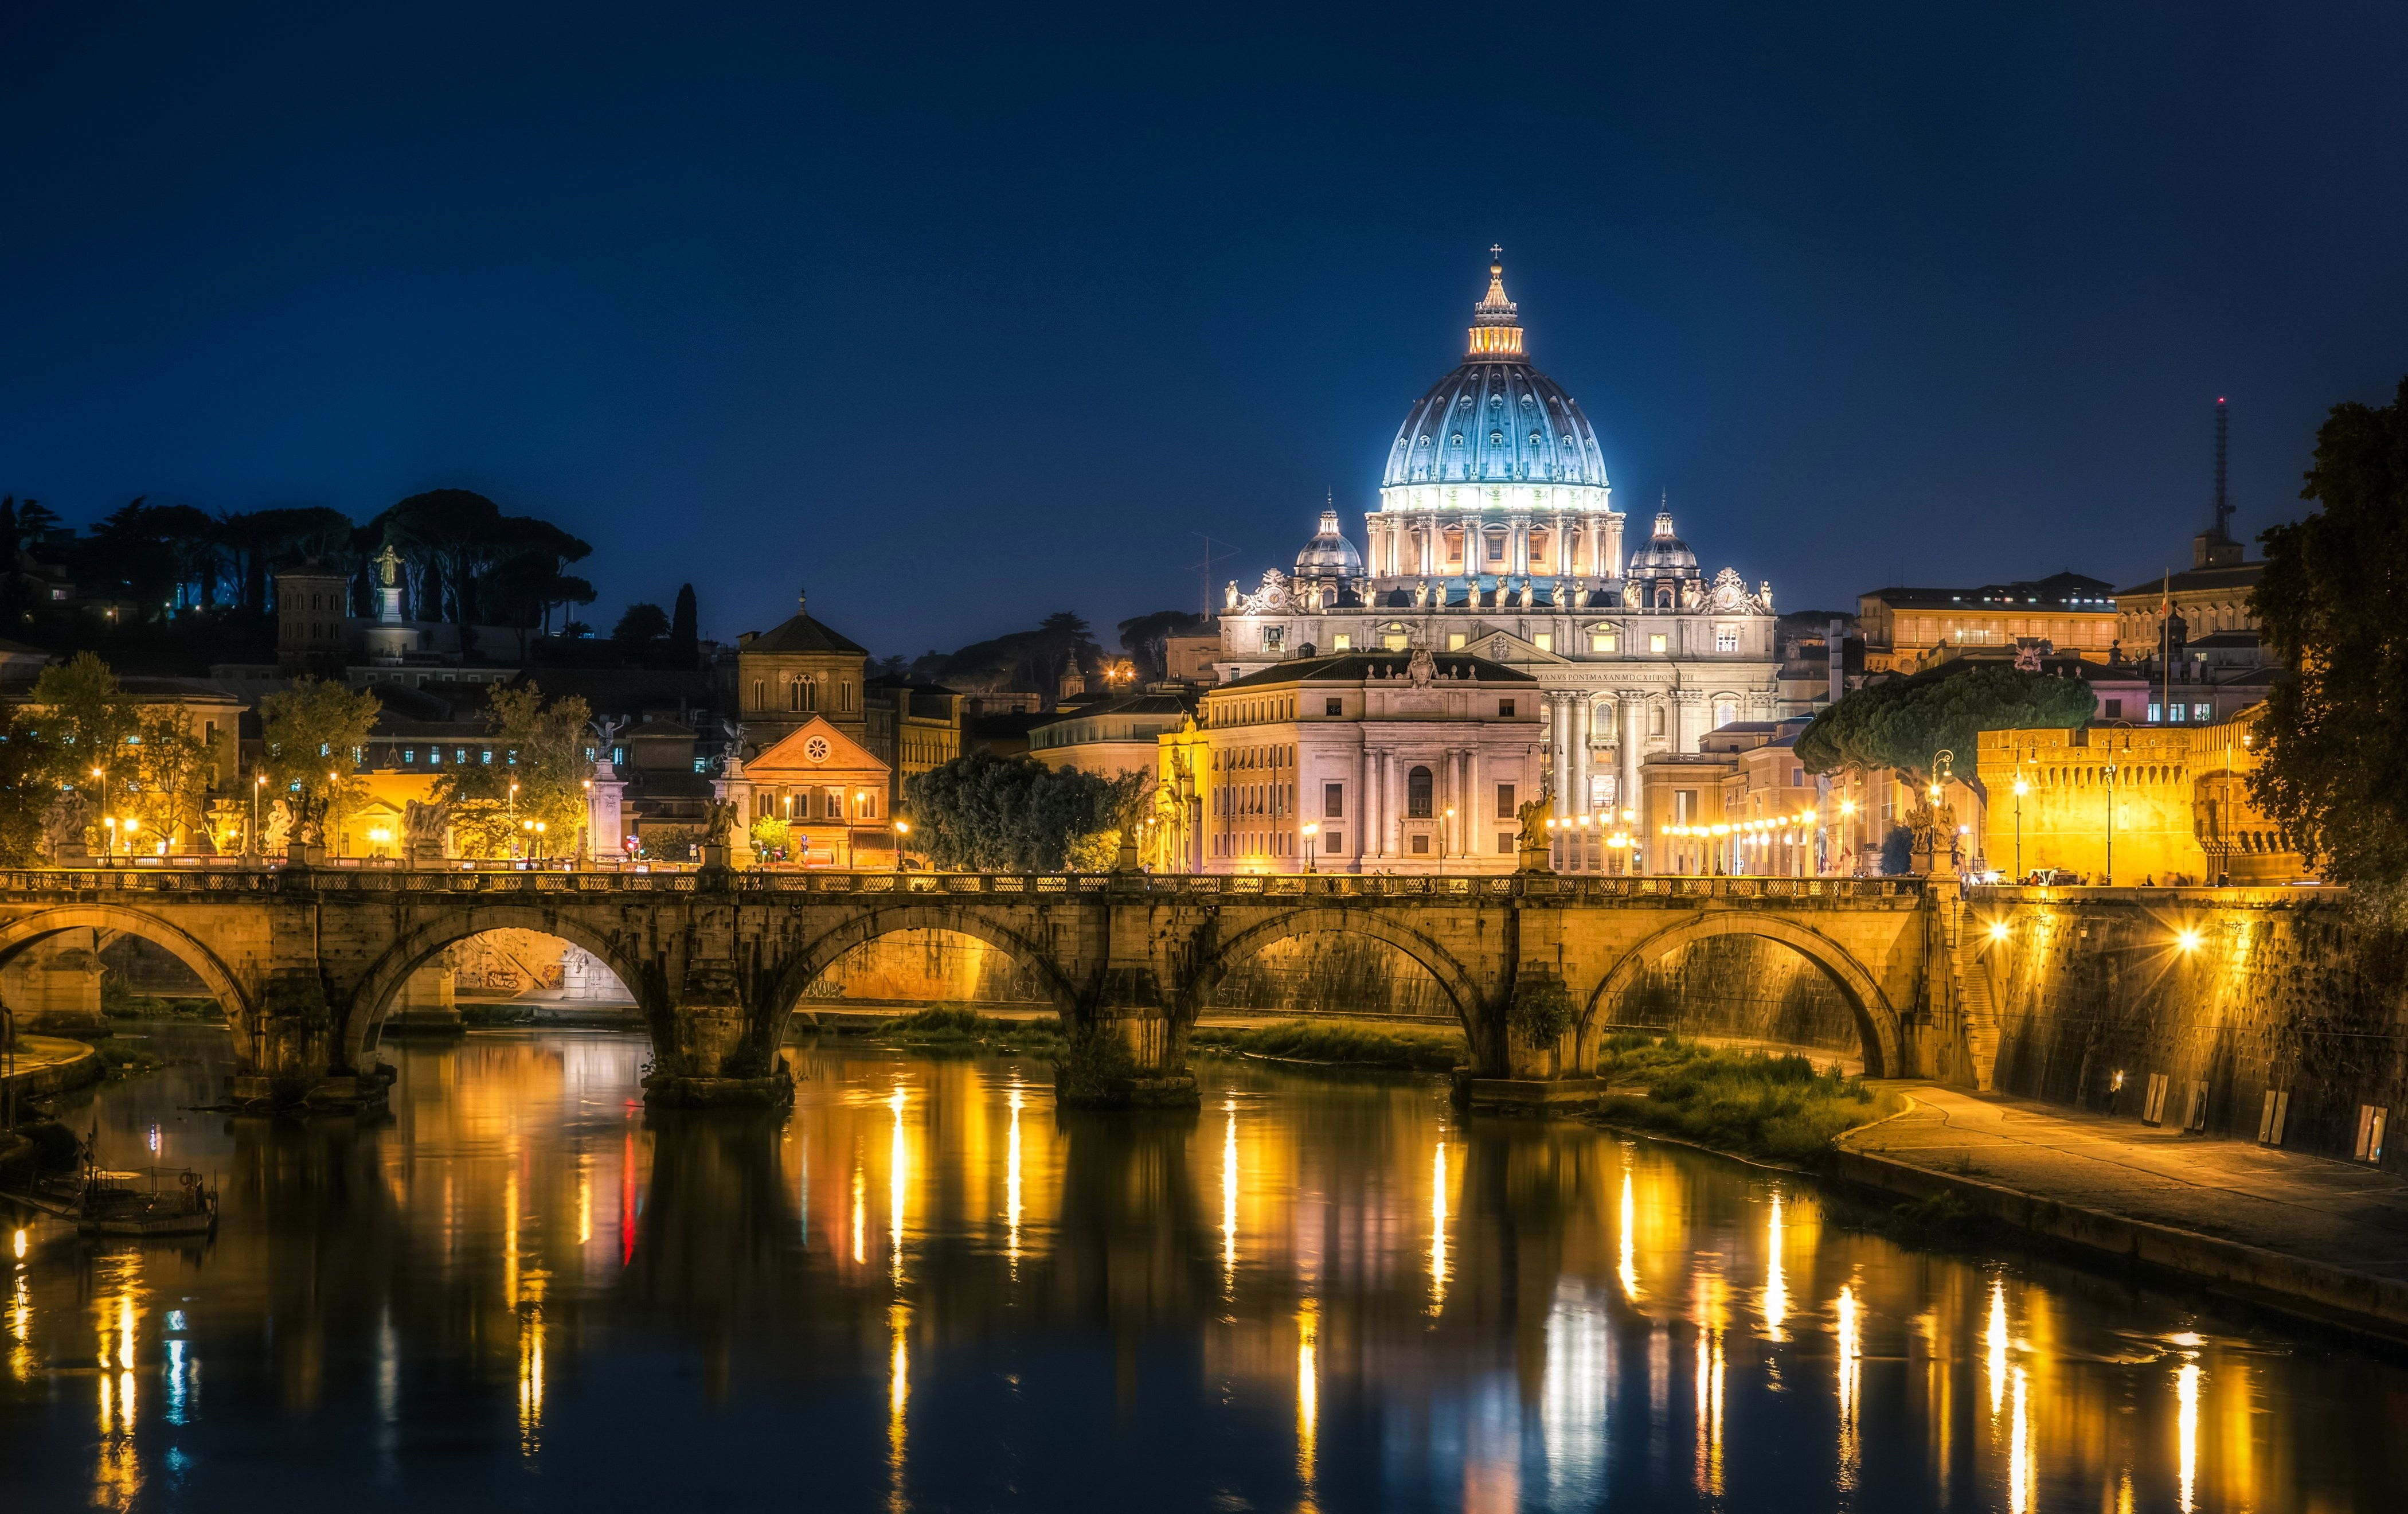 General 4200x2640 cityscape night lights architecture old building sky water reflection long exposure Rome Vatican City bridge trees Italy cathedral